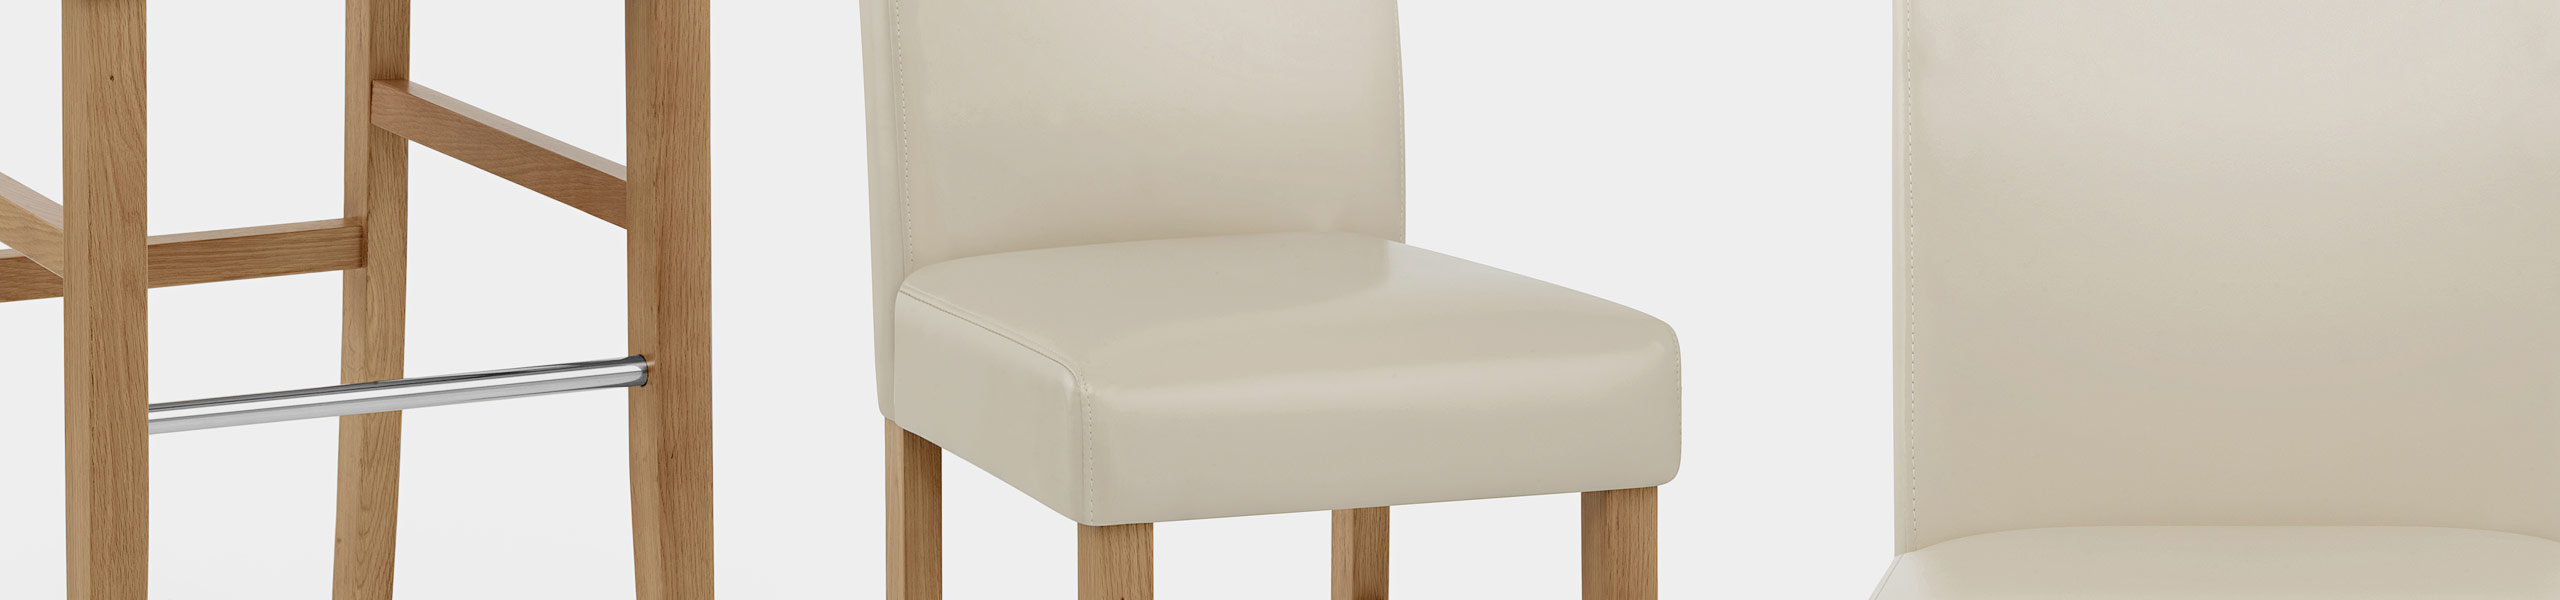 Purnell Oak Stool Cream Video Banner